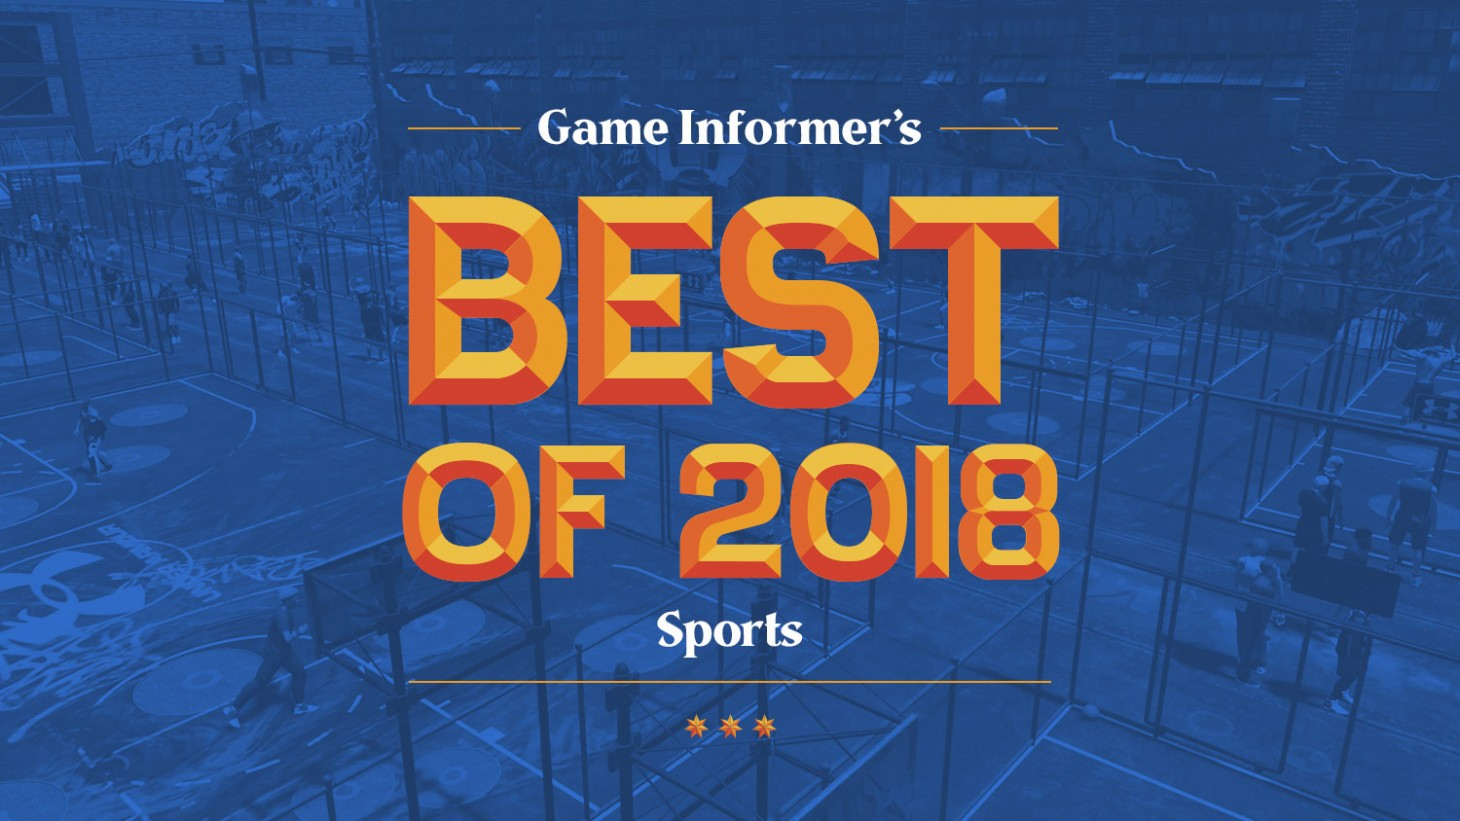 The 2018 Sports Game Awards - Game Informer